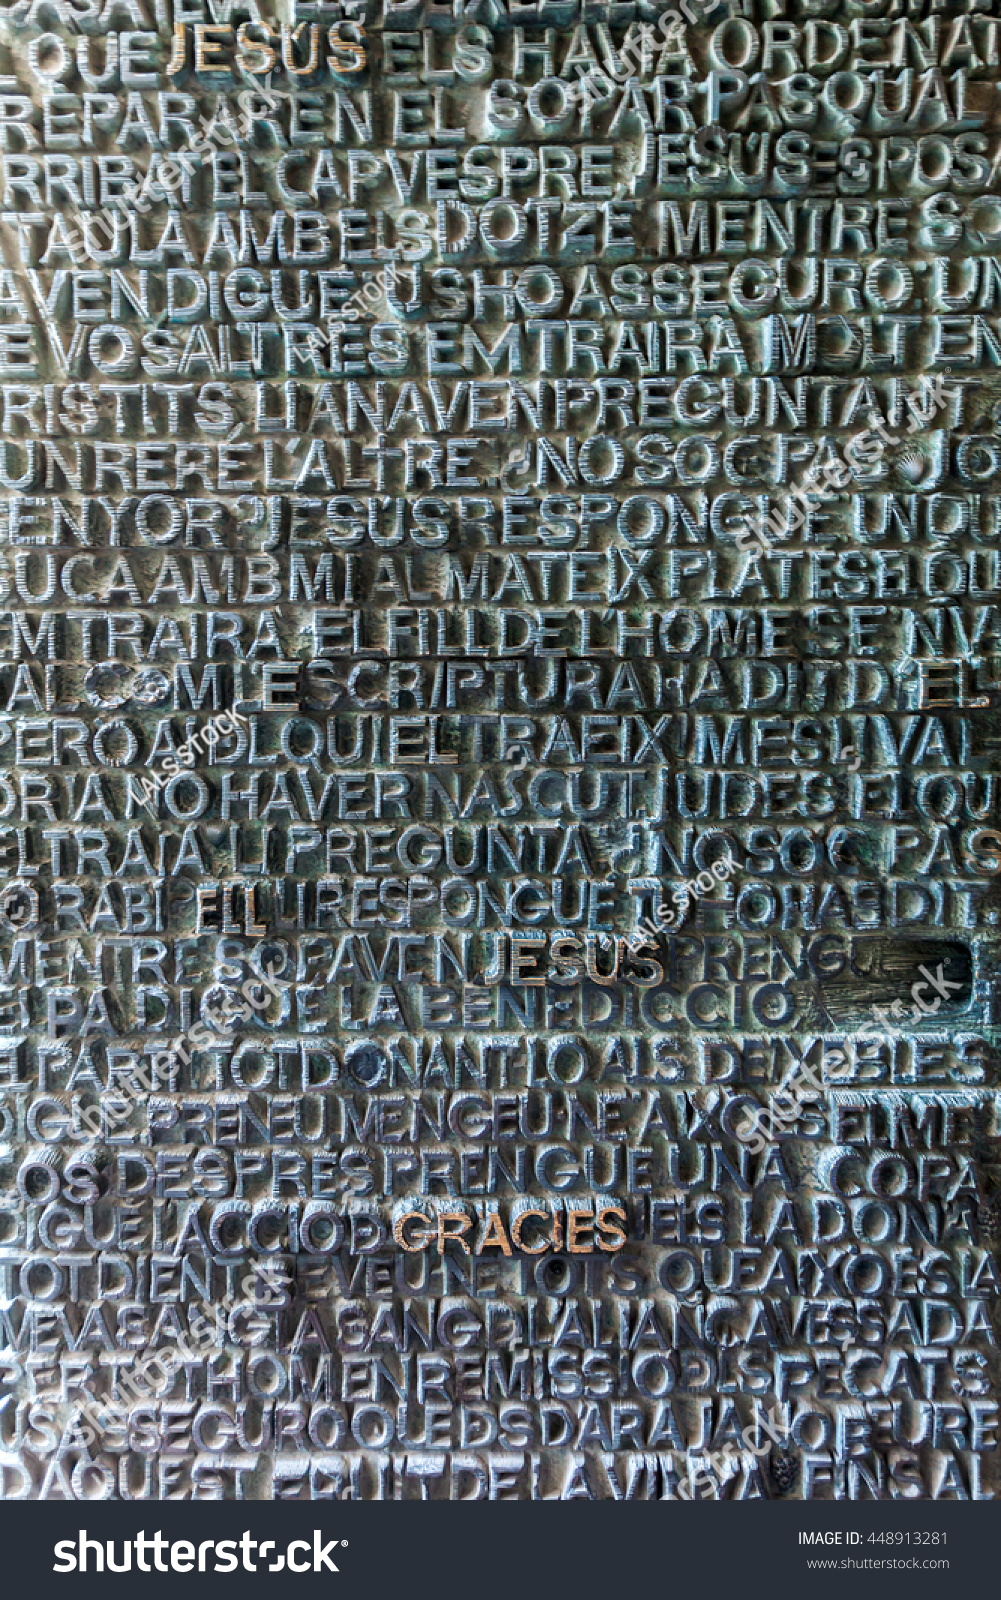 extruded letters in the plane of the wall with the words from the bible on religious